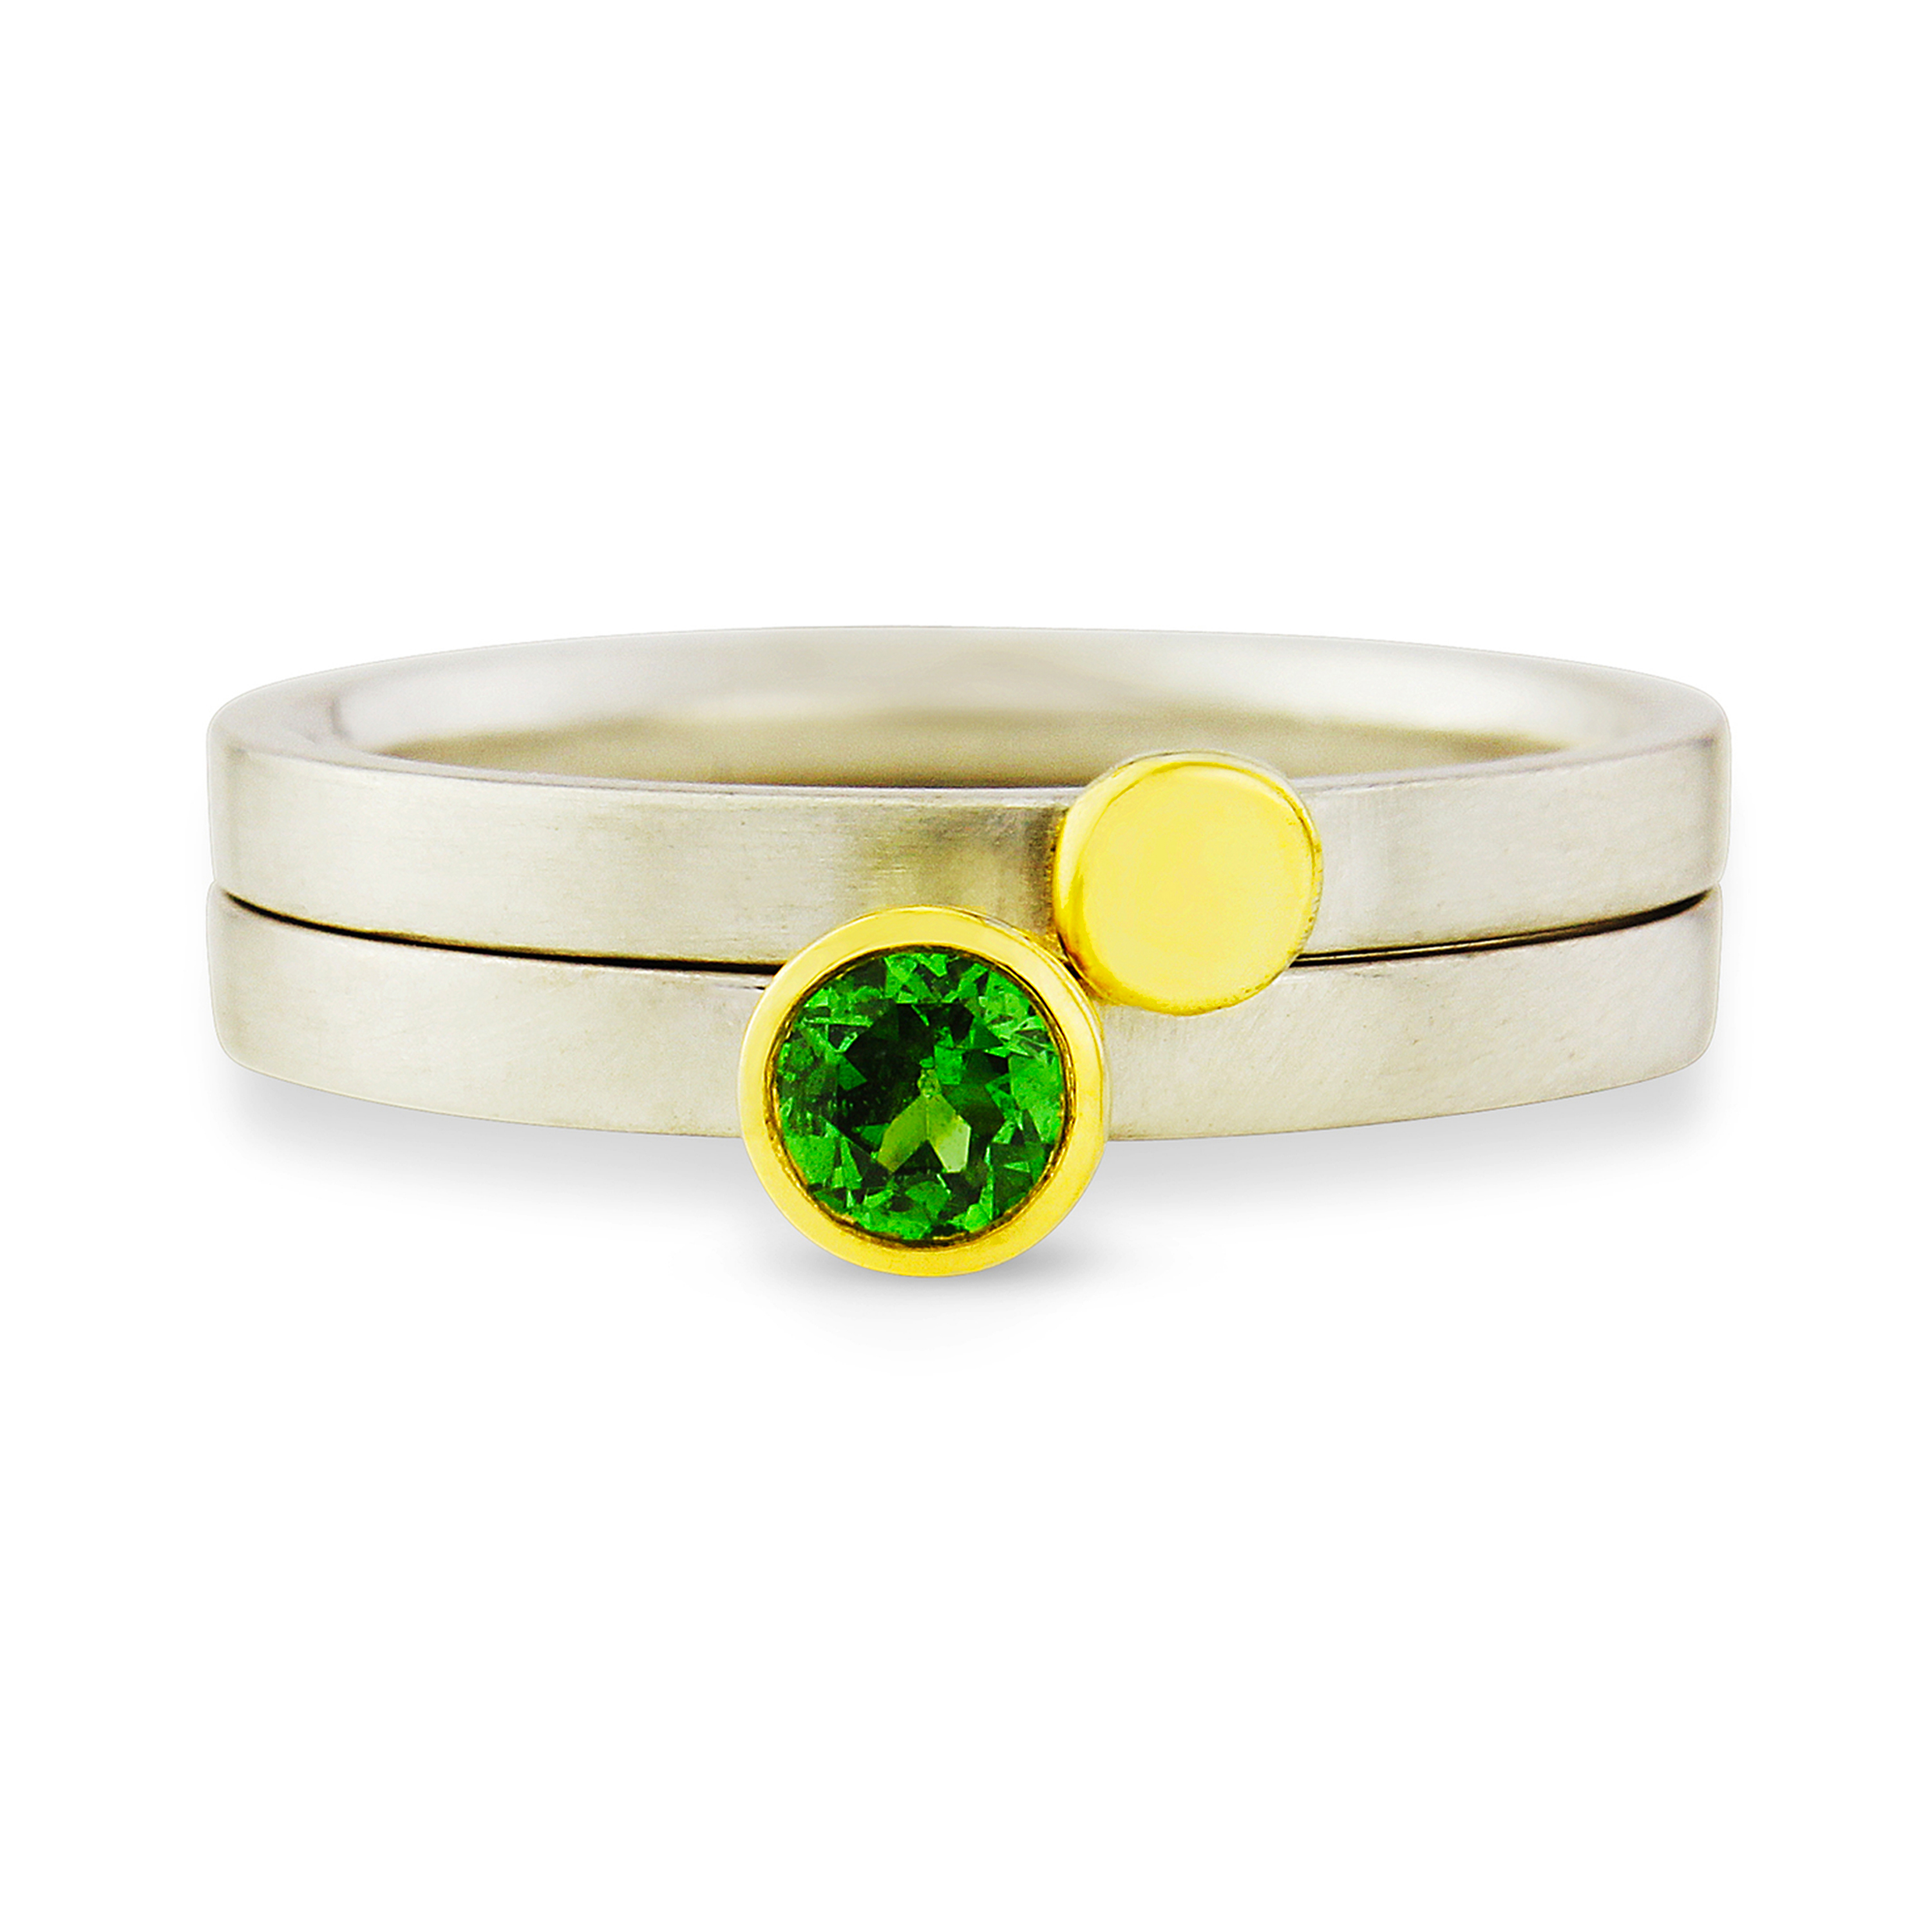 18 carat yellow gold, tourmaline and silver stacking ring pair